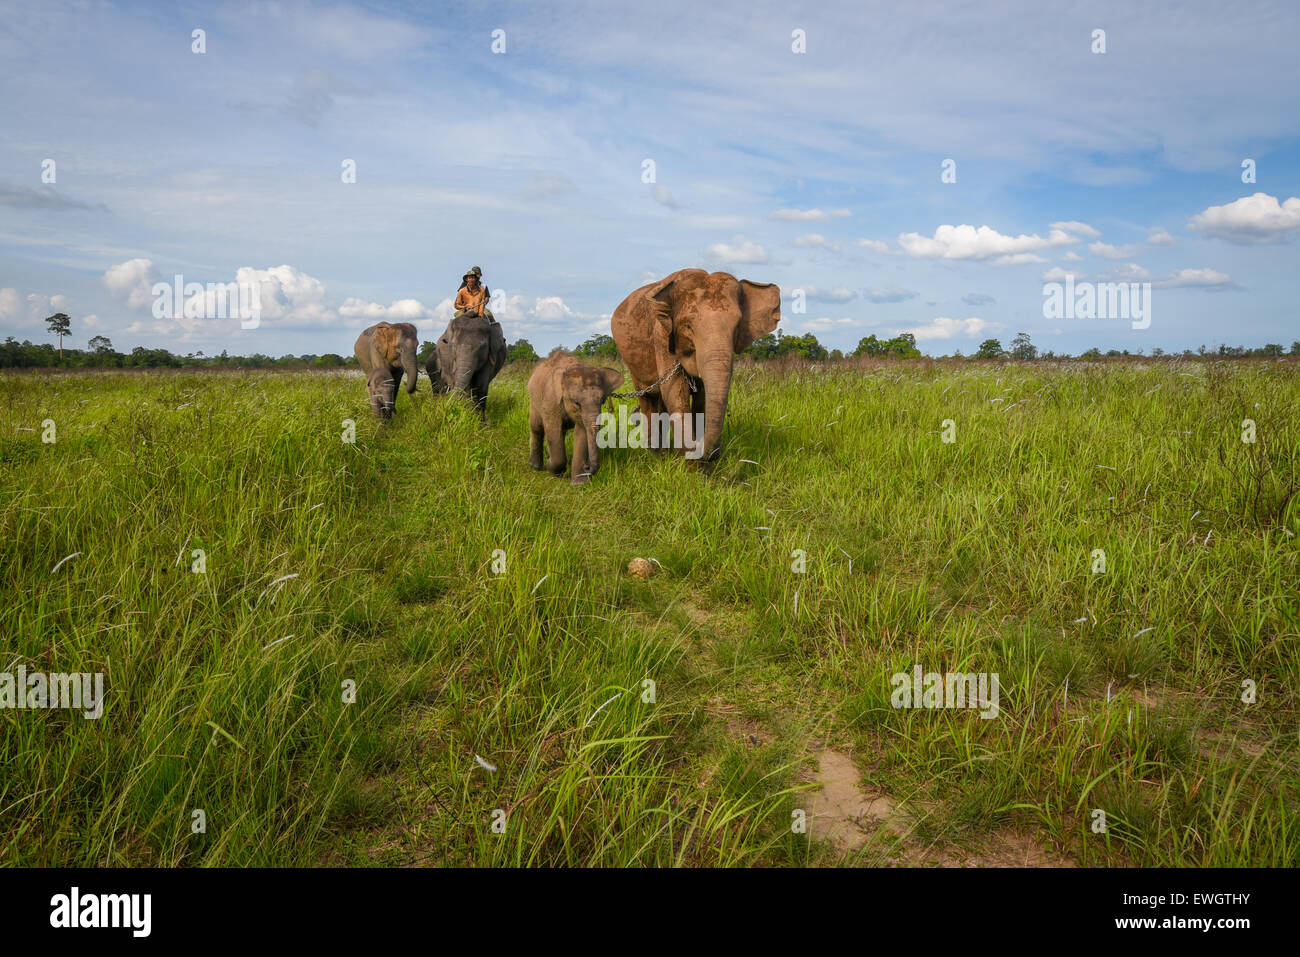 Herds of Sumatran elephants (Elephas maximus sumatranus) on Way Kambas National Park grassland. - Stock Image